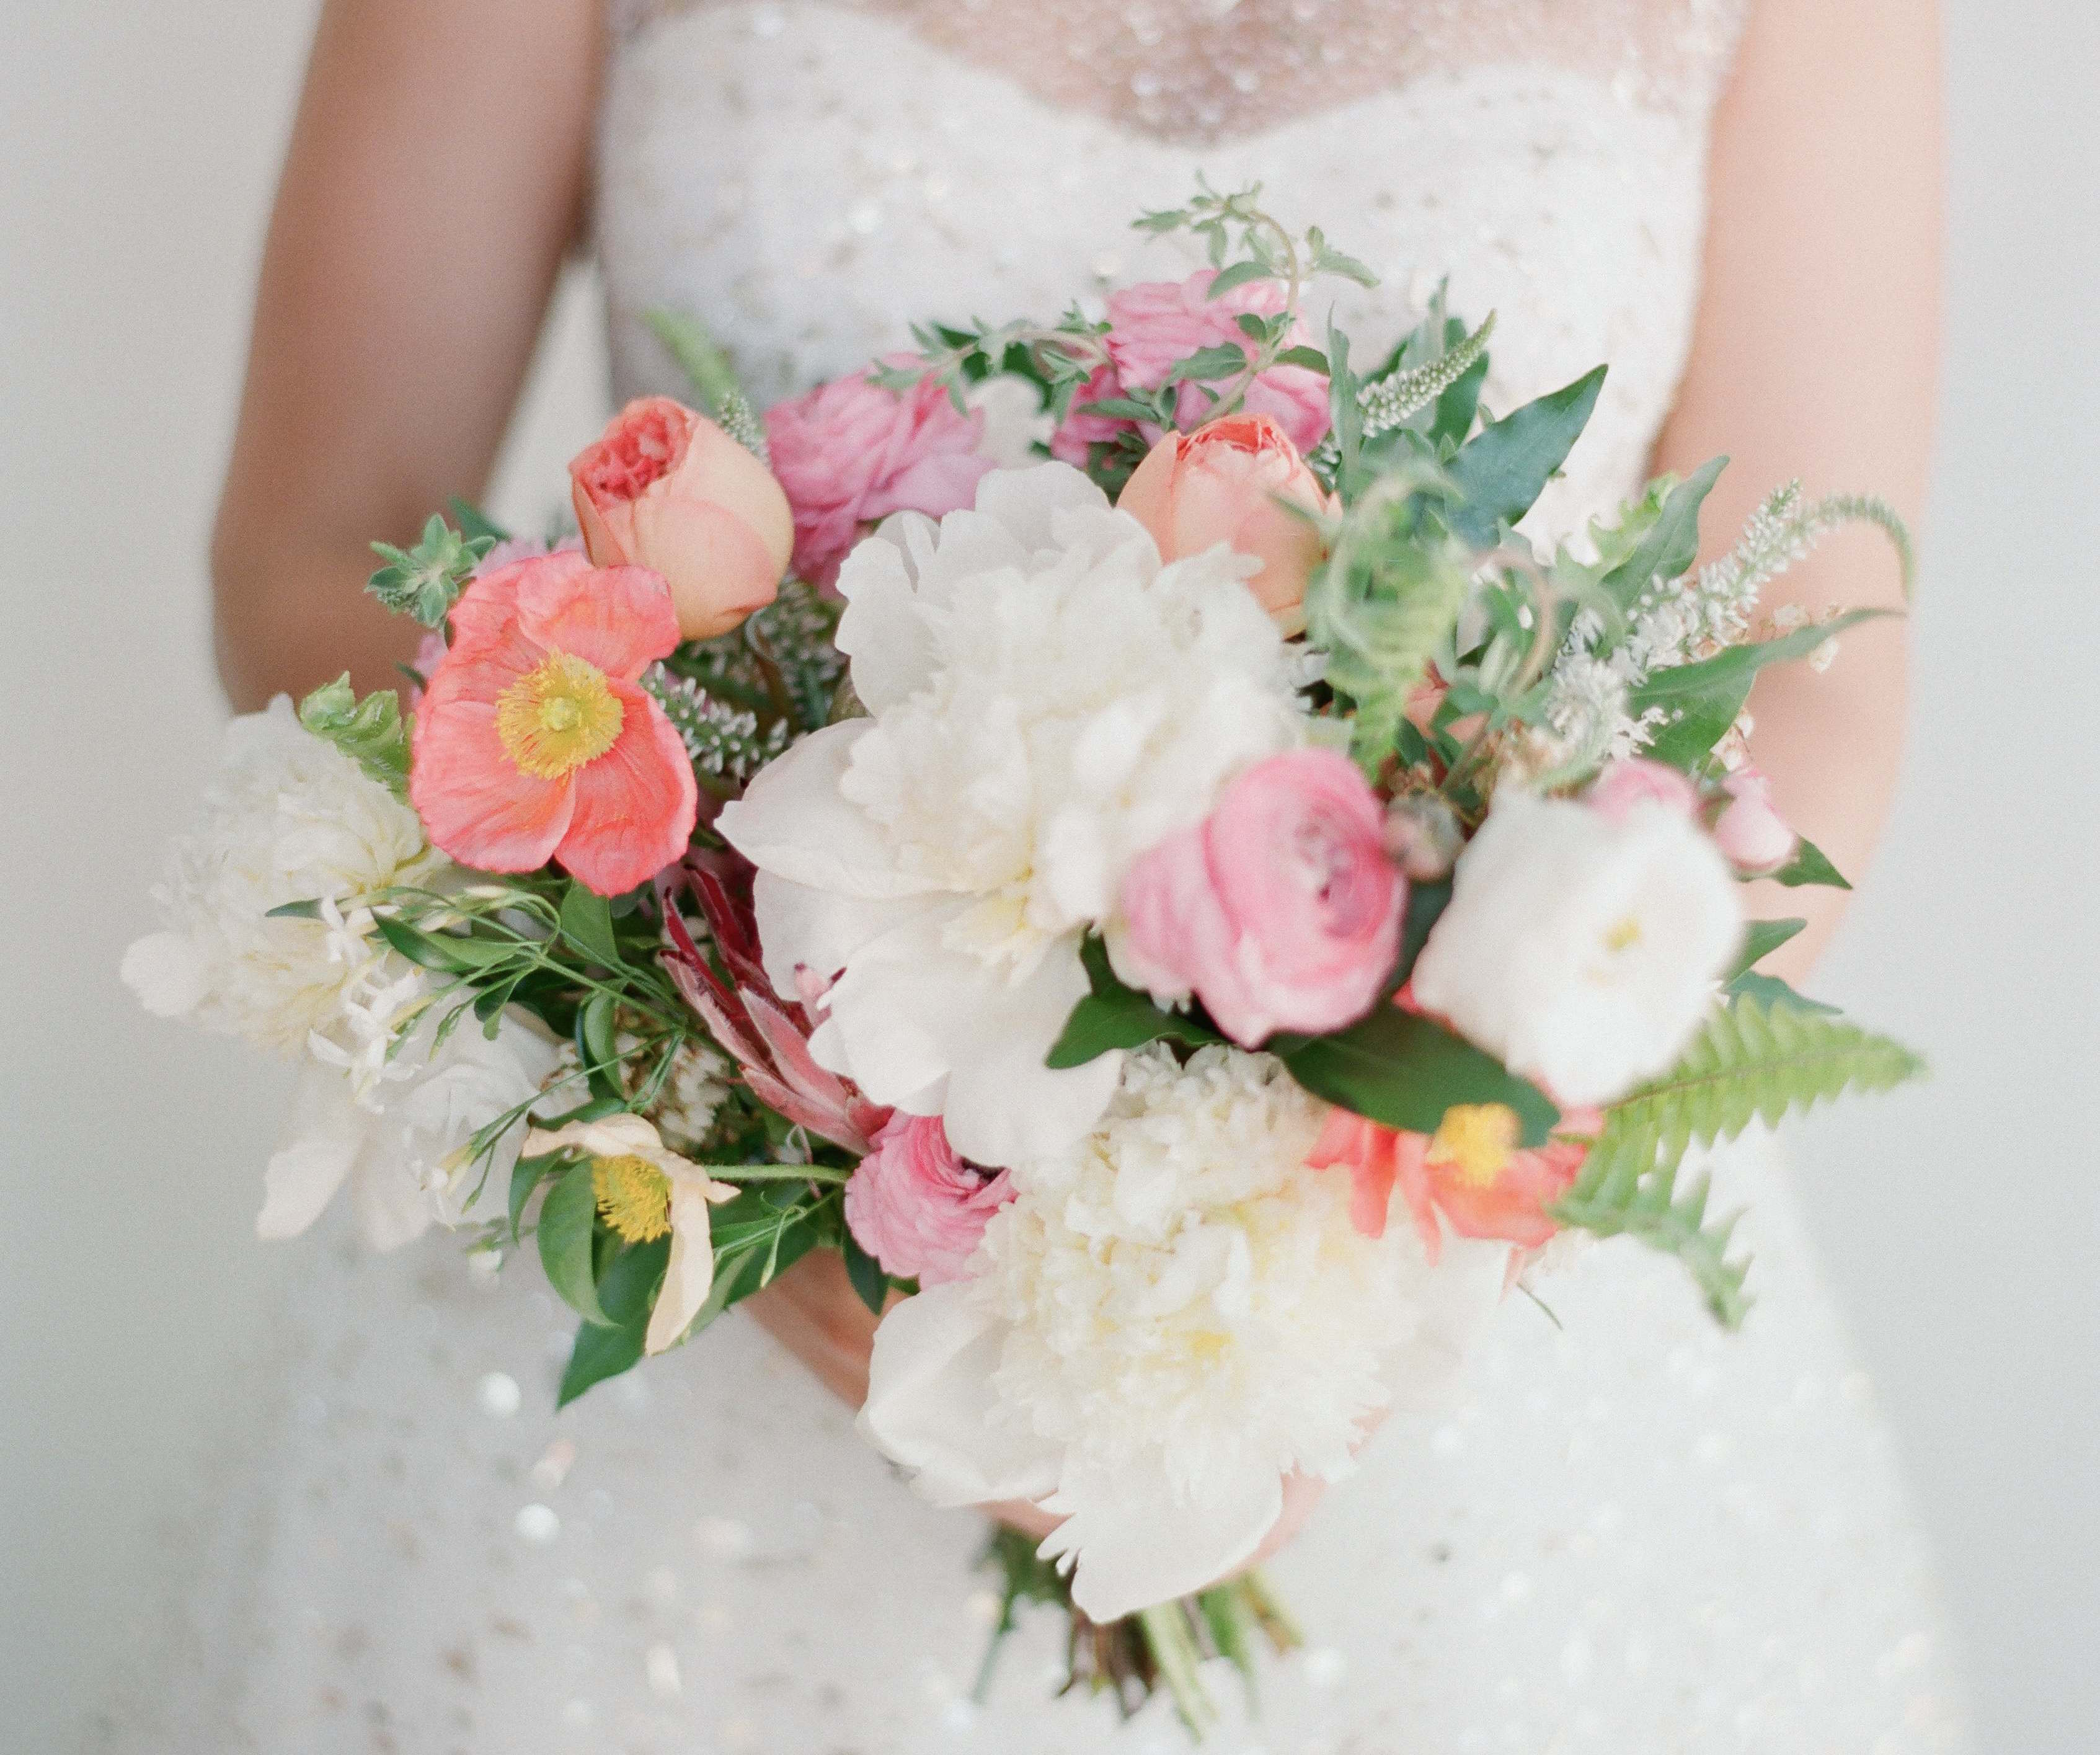 Organic wedding bouquet with pink accents